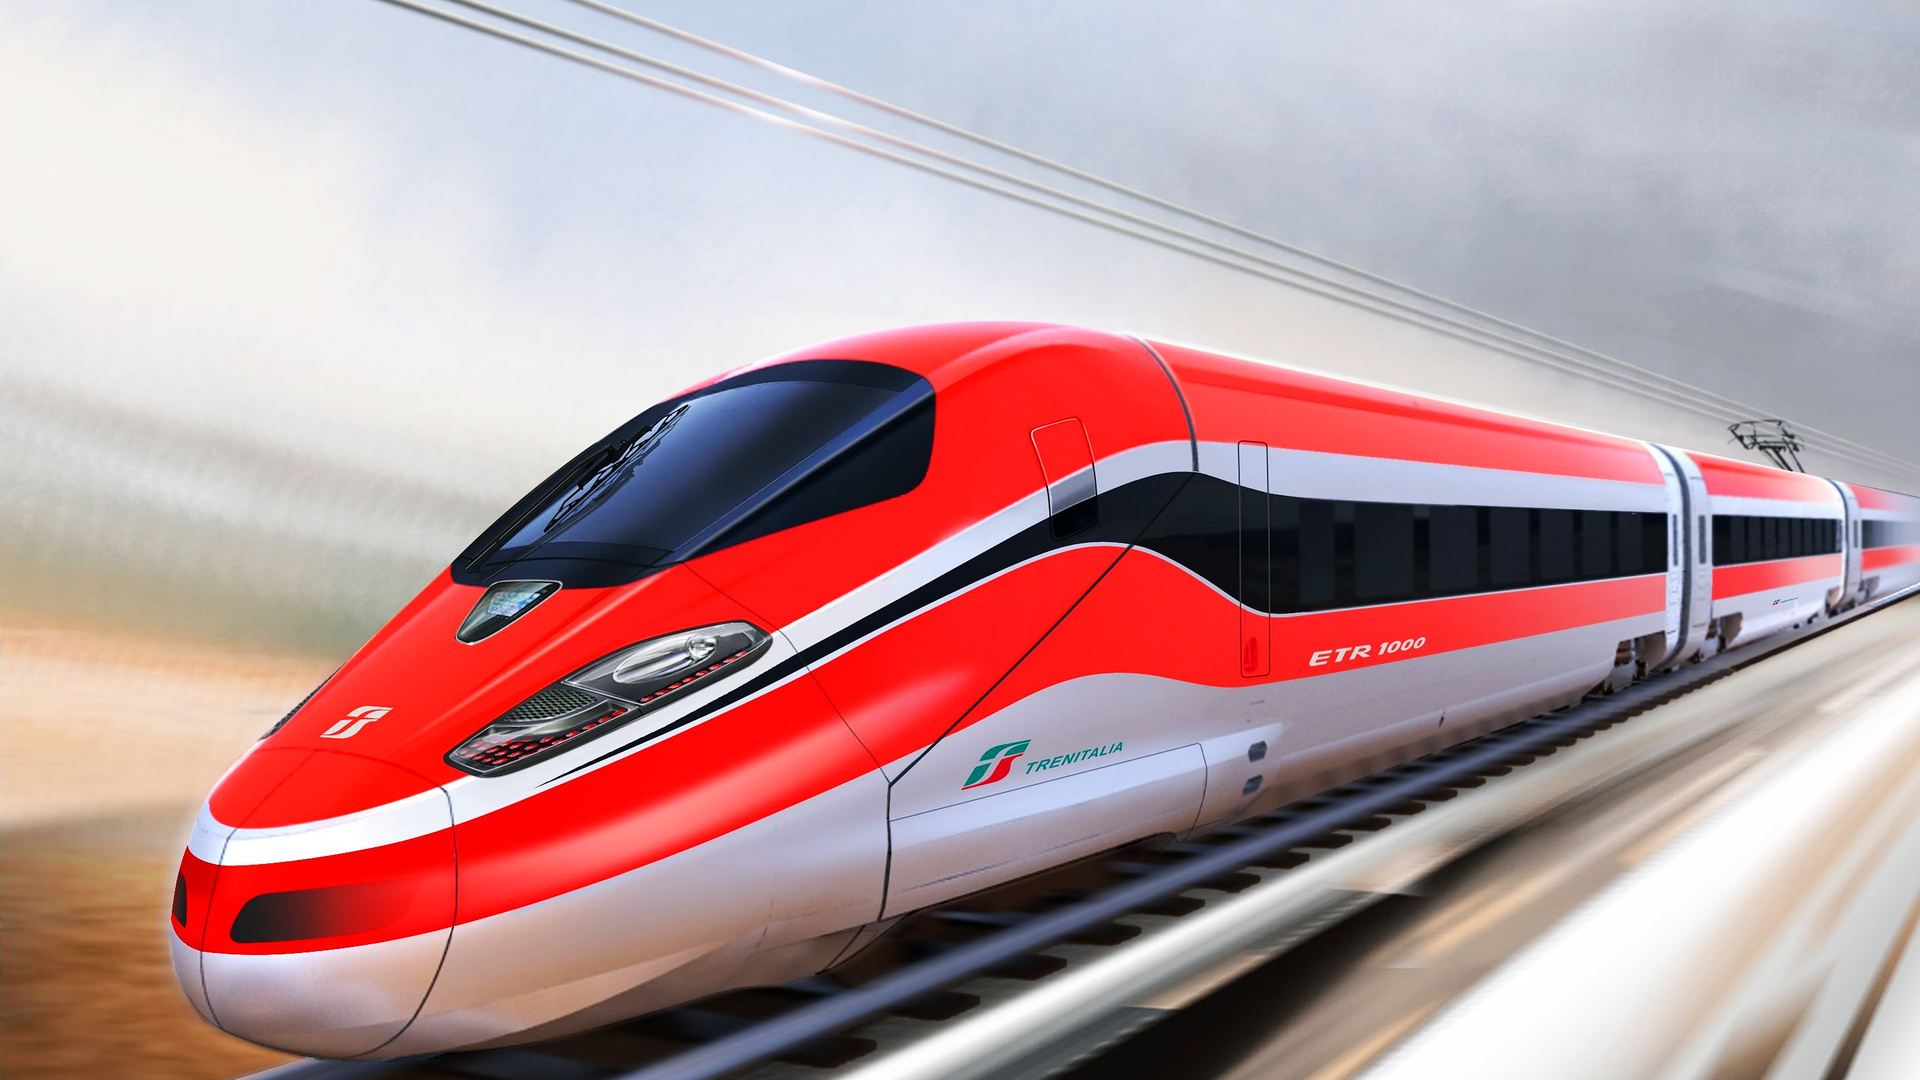 1920x1080 Trenitalia Train Red Speed Train Bullet Train 1920x1080